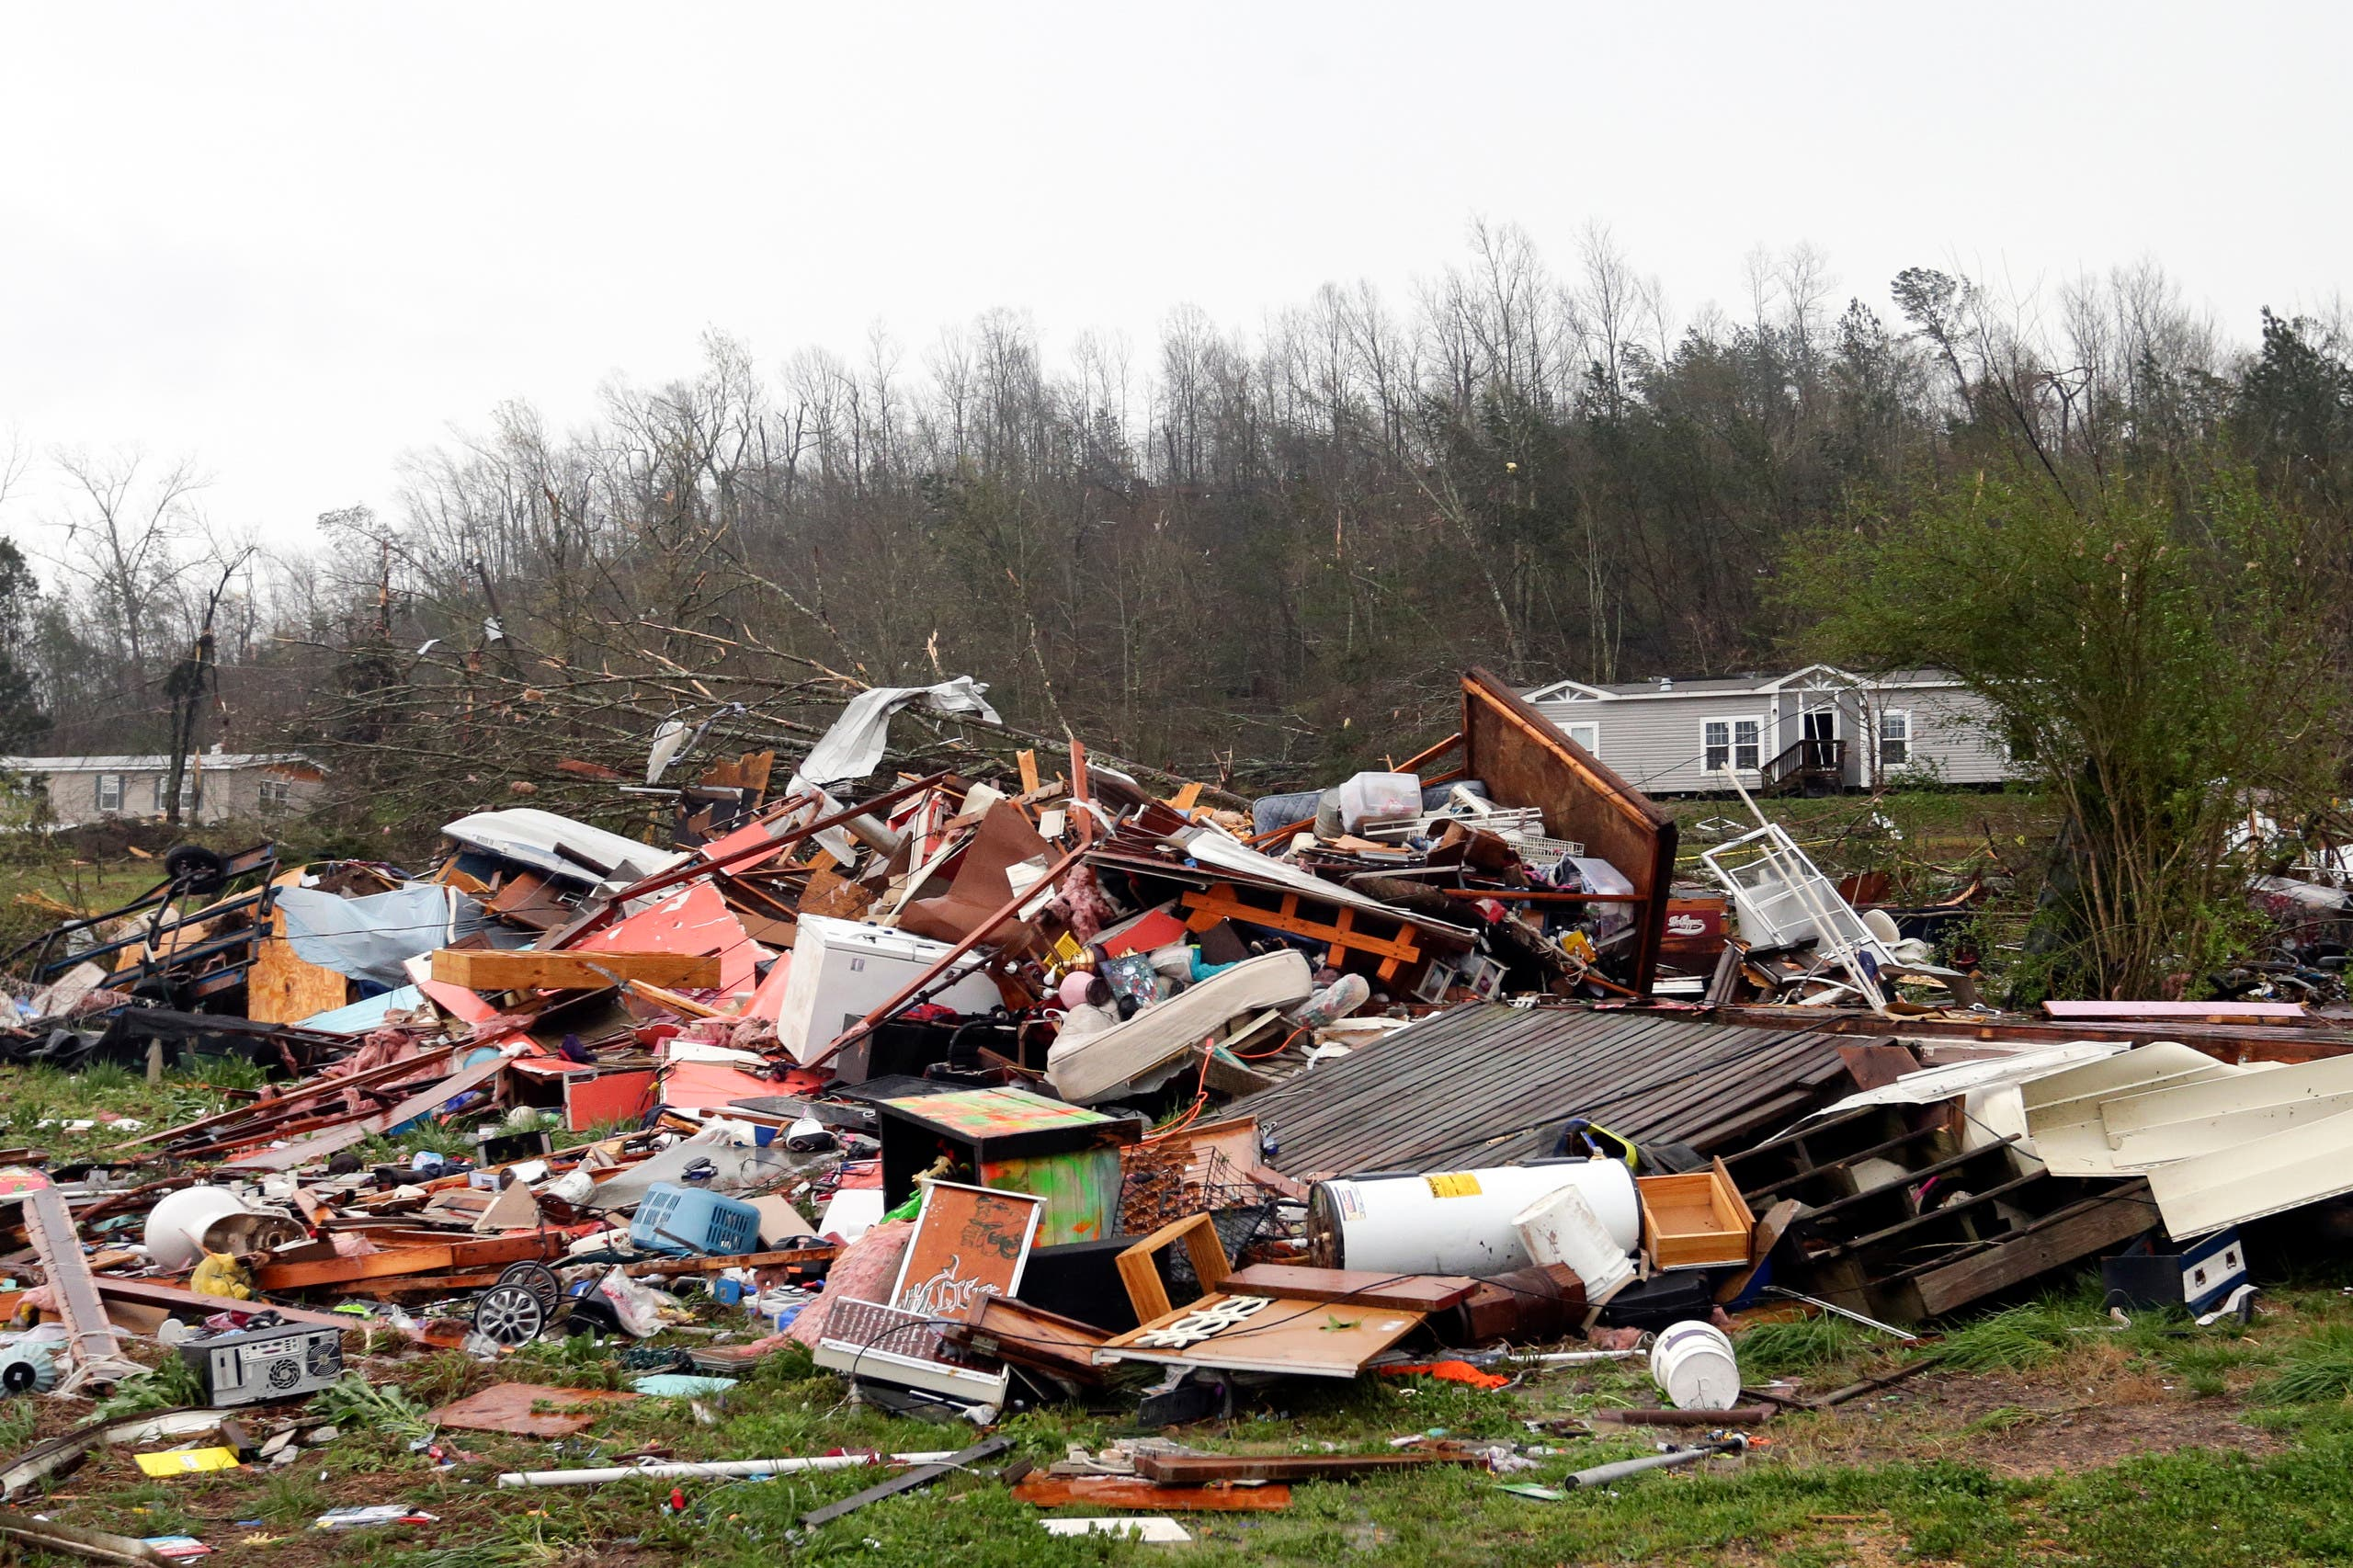 Piles of debris remain after a tornado touched down killing several people and damaging multiple homes, Thursday, March 25, 2021 in Ohatchee, Ala. (AP)